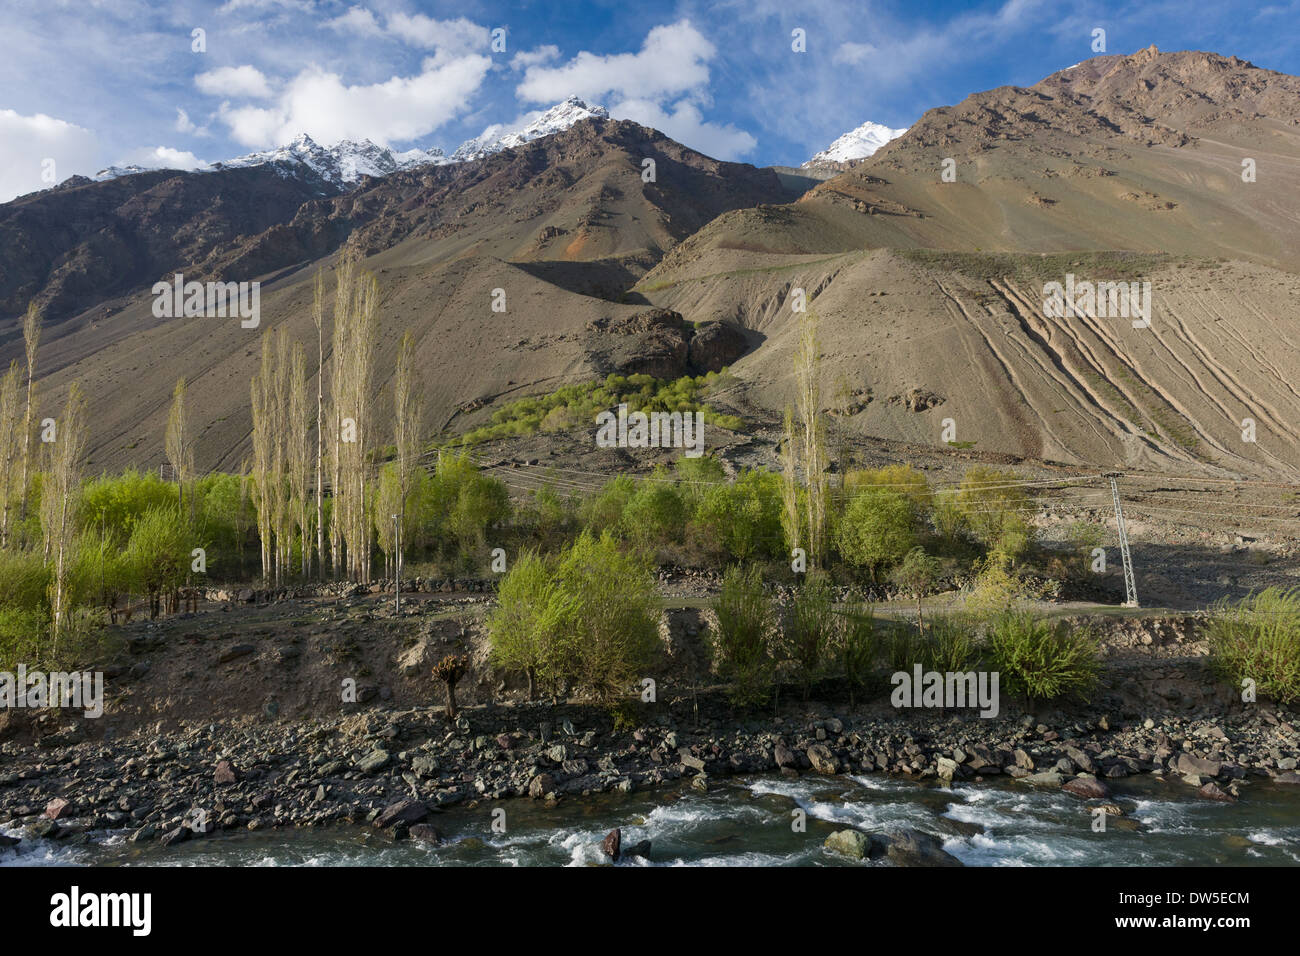 Steep walls of the Ghizar River (Gilgit River) Valley near Matuti Village, seen from the Shandur-Gilgit Road, near the Shandur Pass, Gilgit-Baltistan, Pakistan - Stock Image